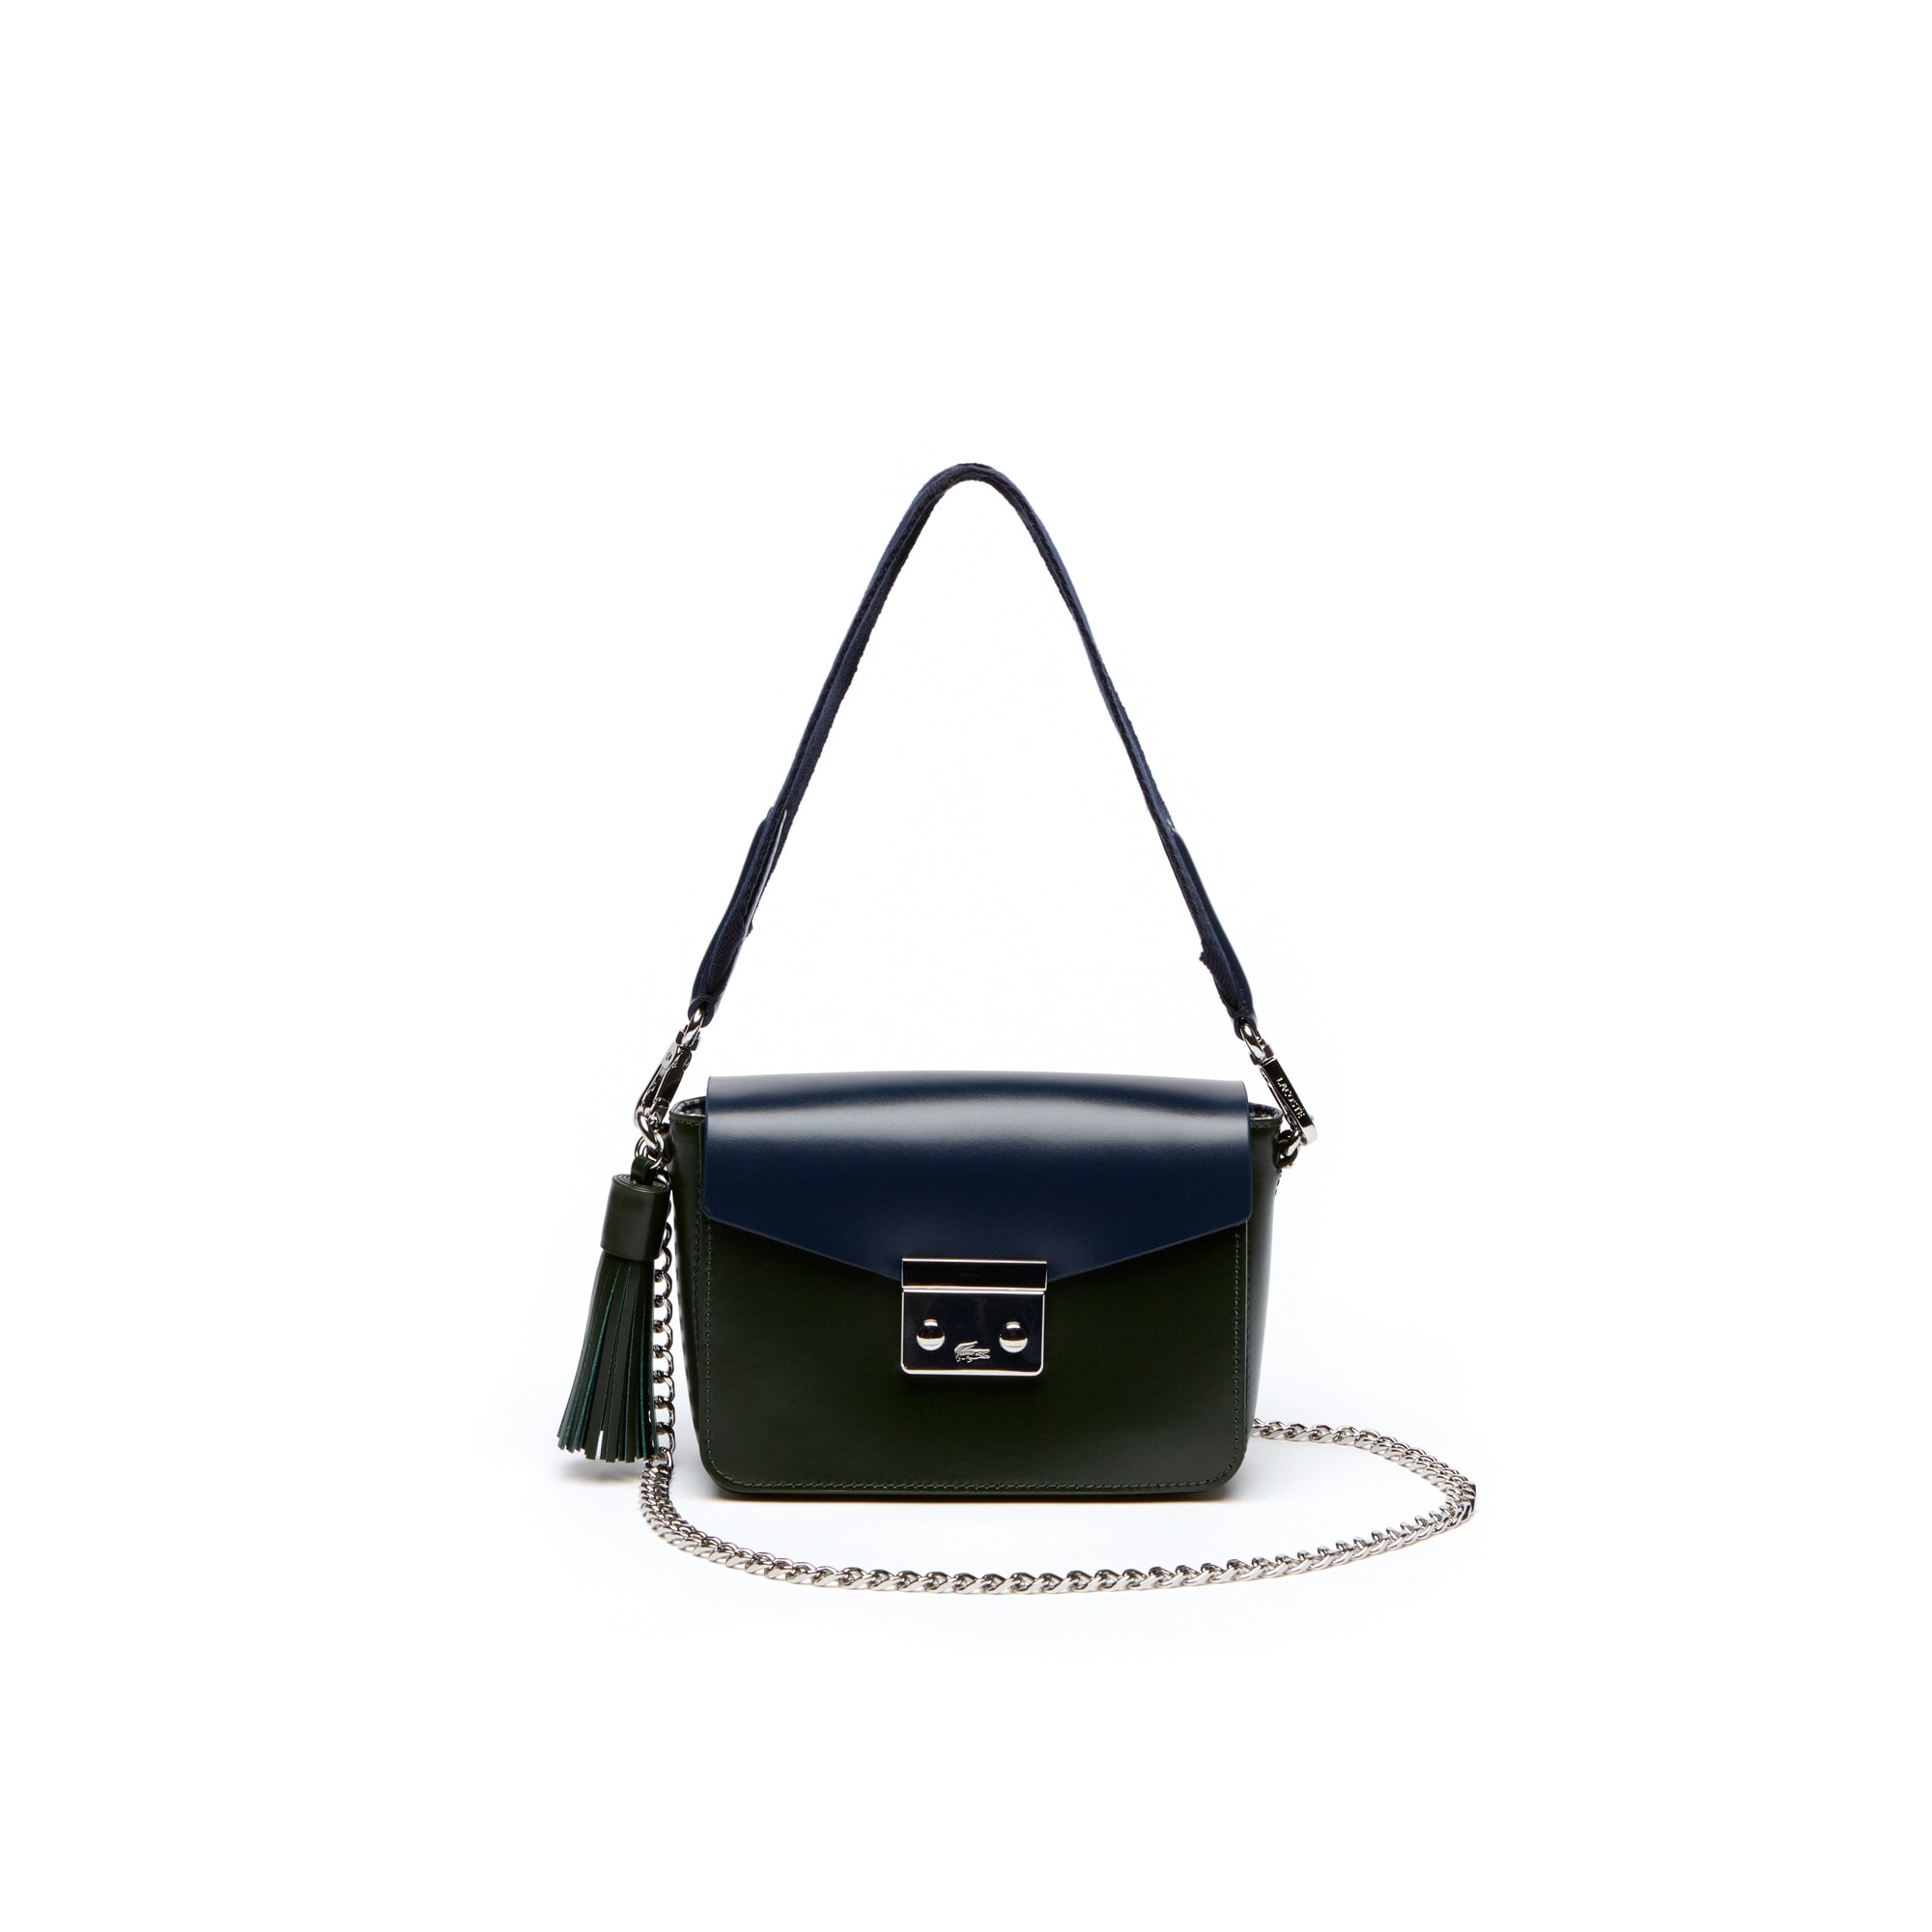 Women's Live Mate Coated Leather Square Shoulder Bag